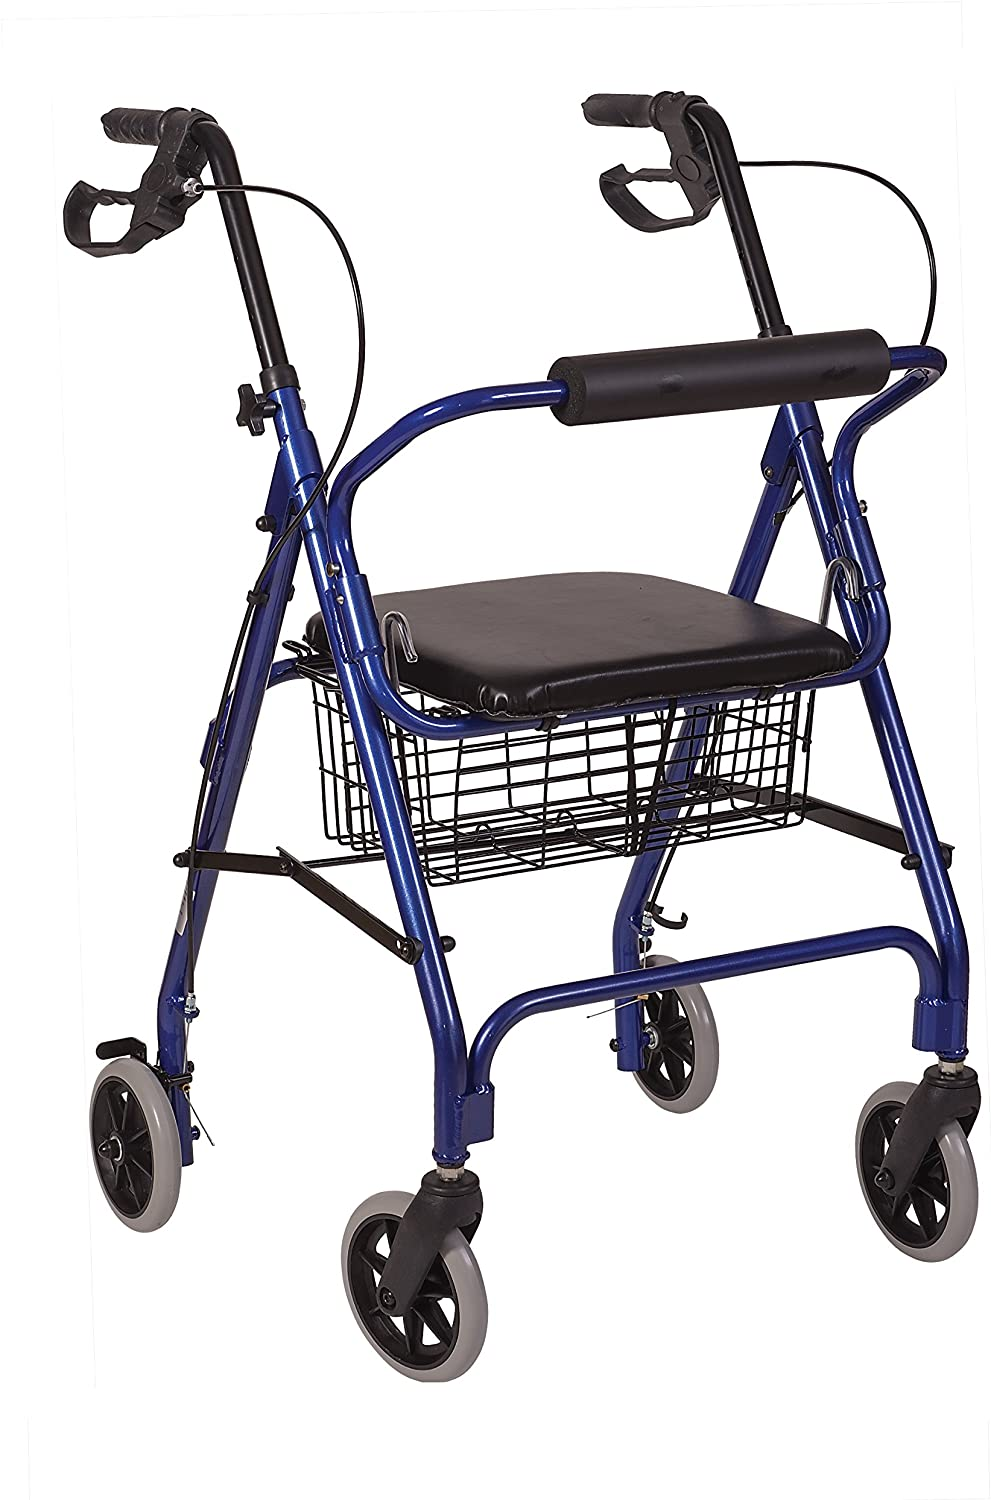 B008KIZ946 HealthSmart Rollator Walker, Adjustable Handle Height Folding Walker, Light Weight Aluminum Walker With Basket, Cushioned Seat and Padded Backrest, 23 x 24 x 30.5 Inches, Royal Blue 81-w3JzcbOL.SL1500_